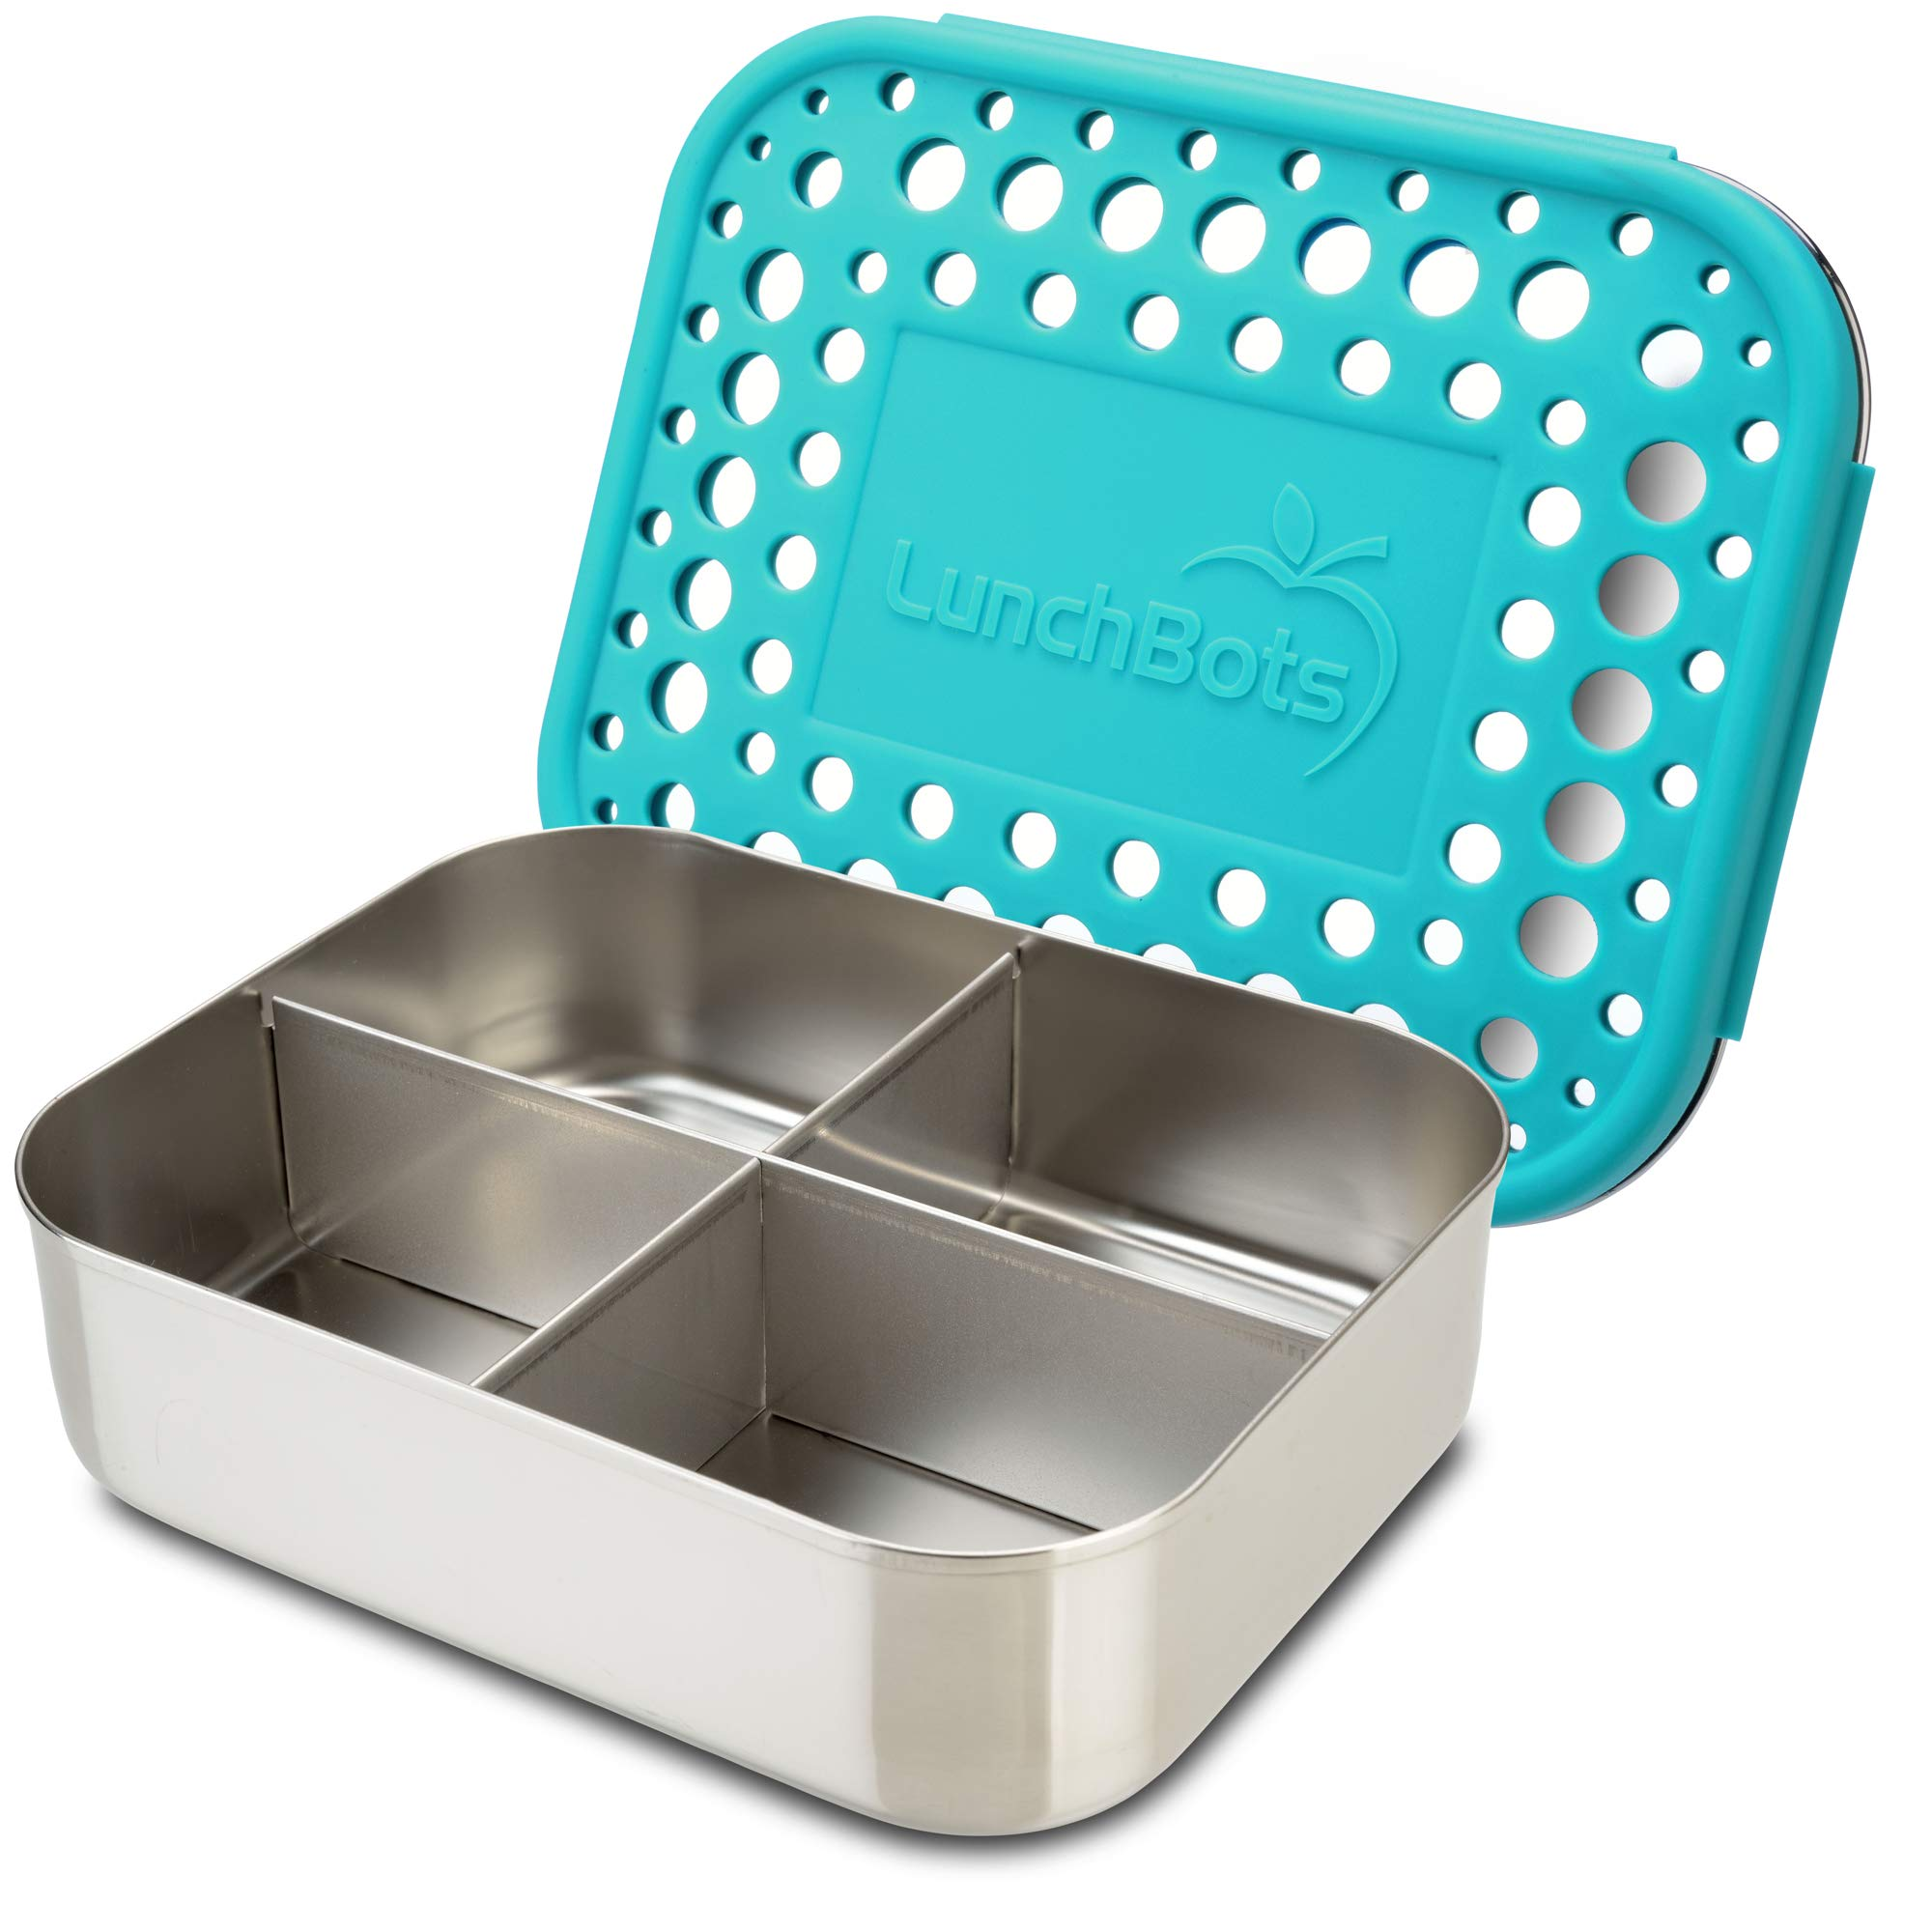 LunchBots Medium Quad Snack Container - Divided Stainless Steel Food Container - Four Sections for Finger Foods On the Go - Eco-Friendly, Dishwasher Safe - Stainless Lid - Aqua Dots